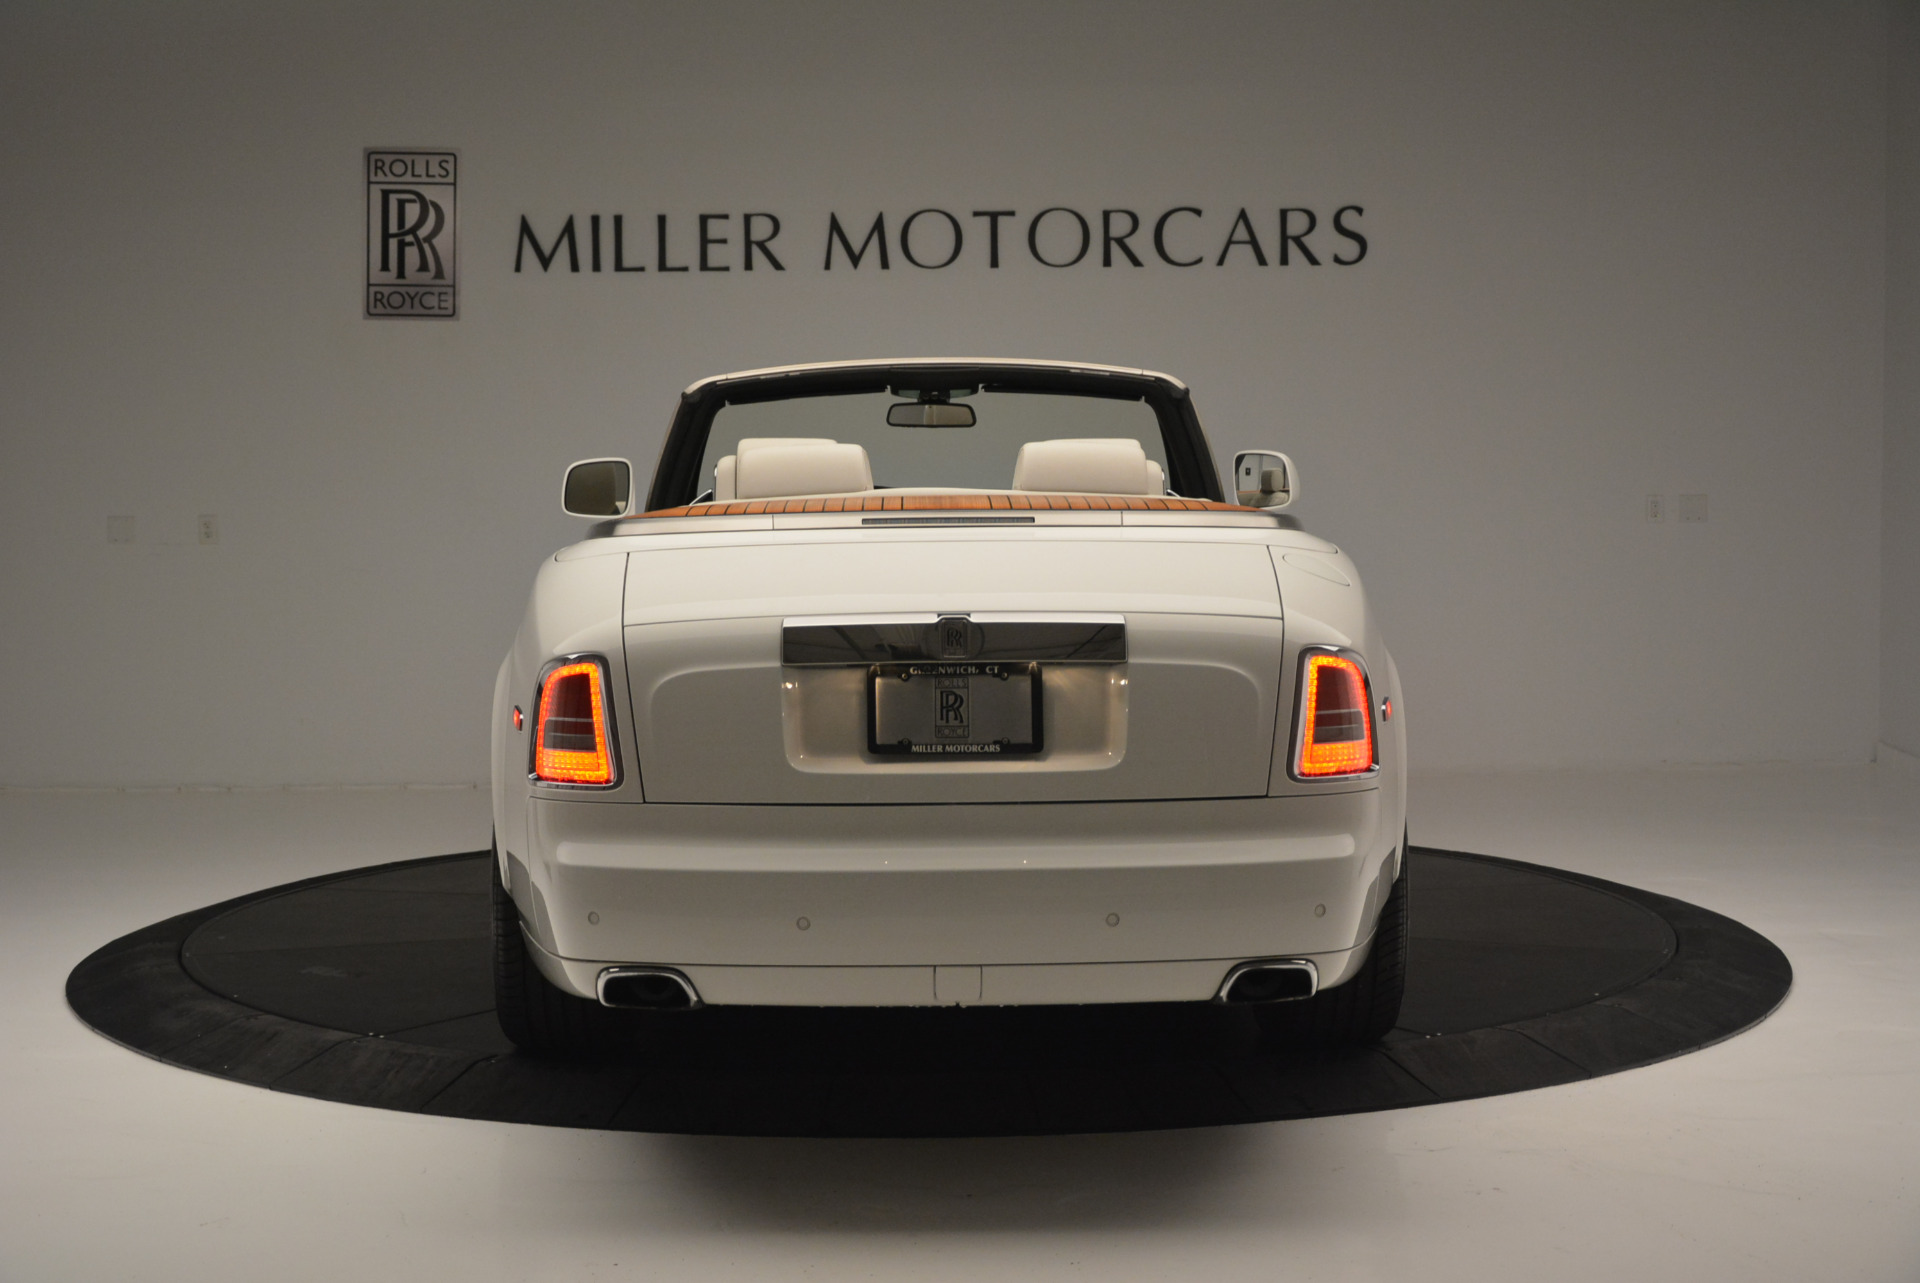 Used 2013 Rolls-Royce Phantom Drophead Coupe  For Sale In Greenwich, CT 2444_p4